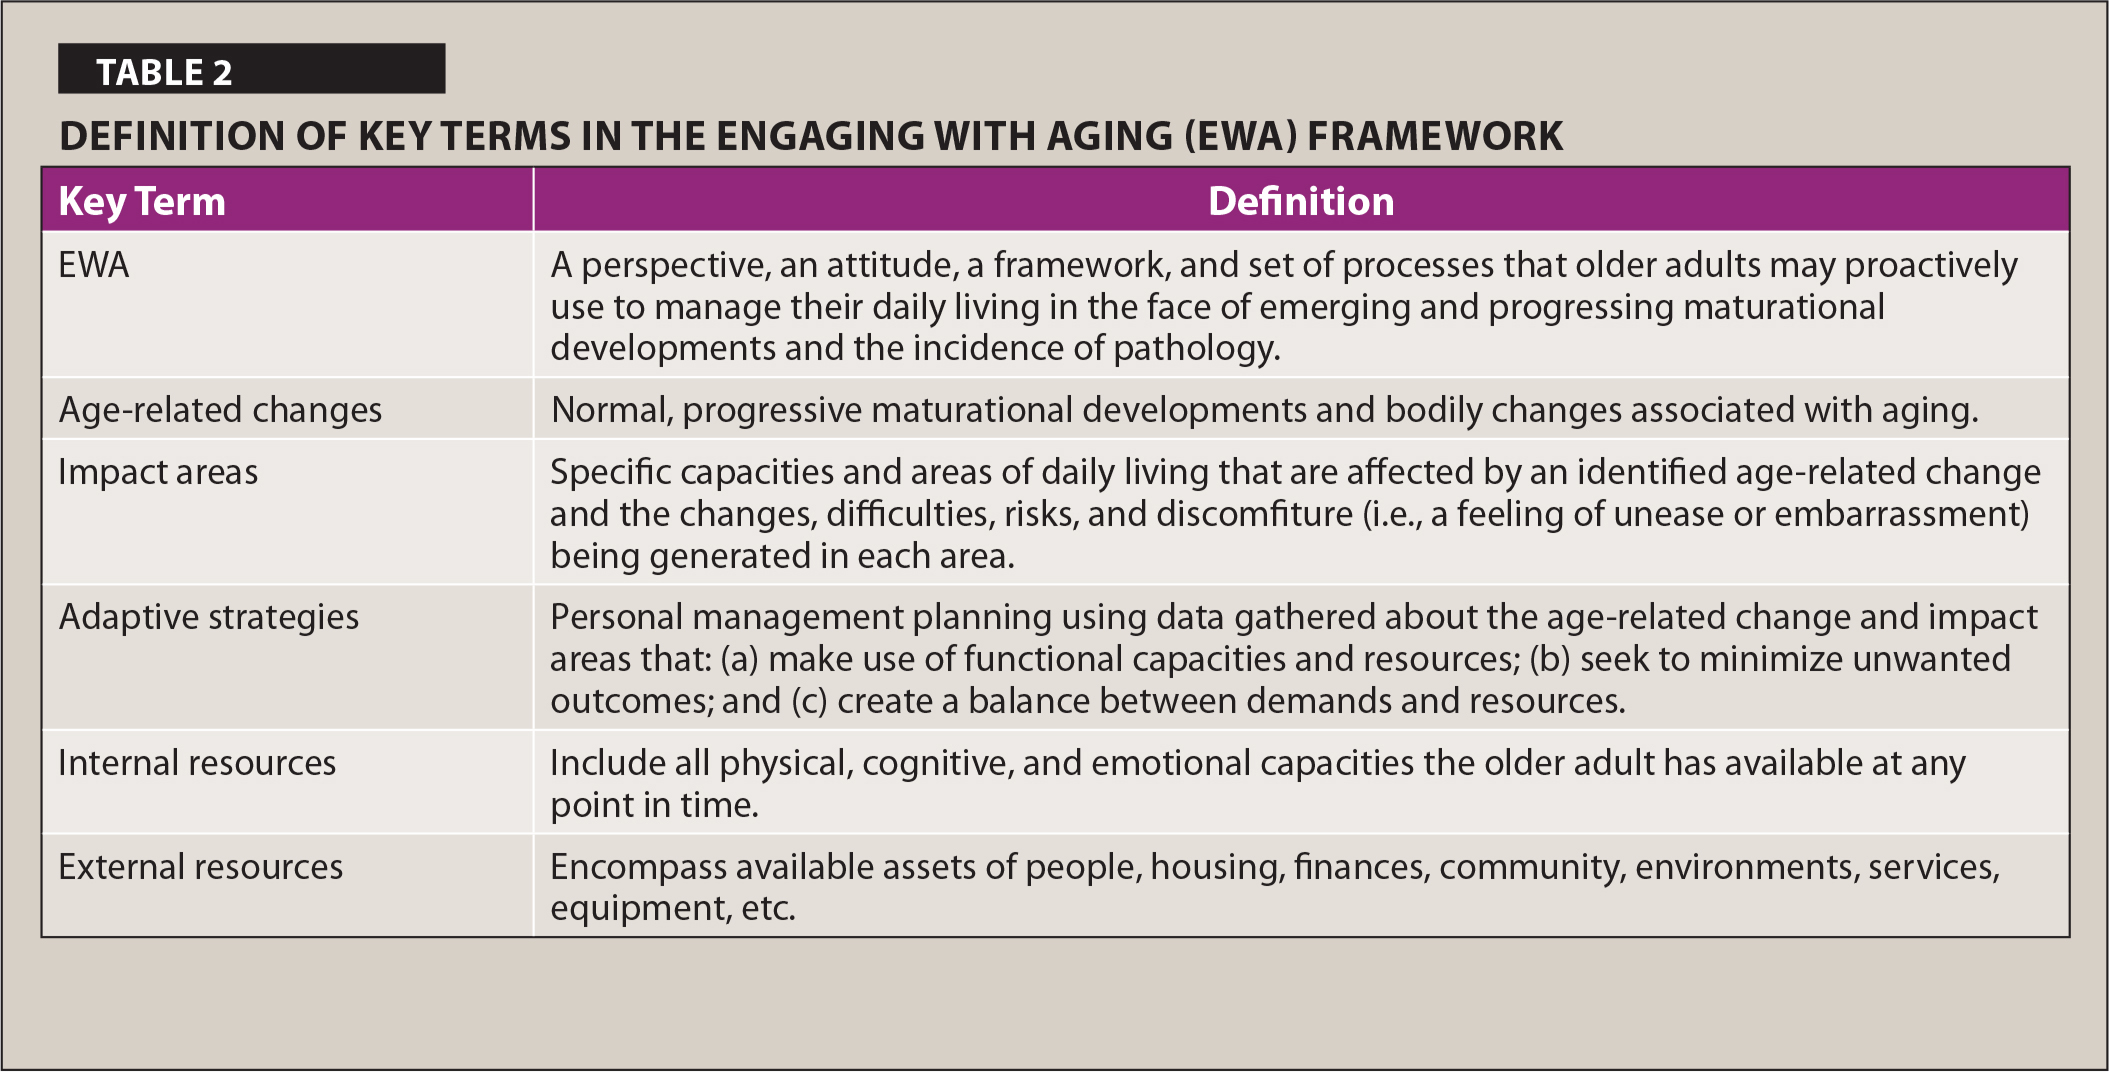 Definition of Key Terms in the Engaging with Aging (EWA) Framework